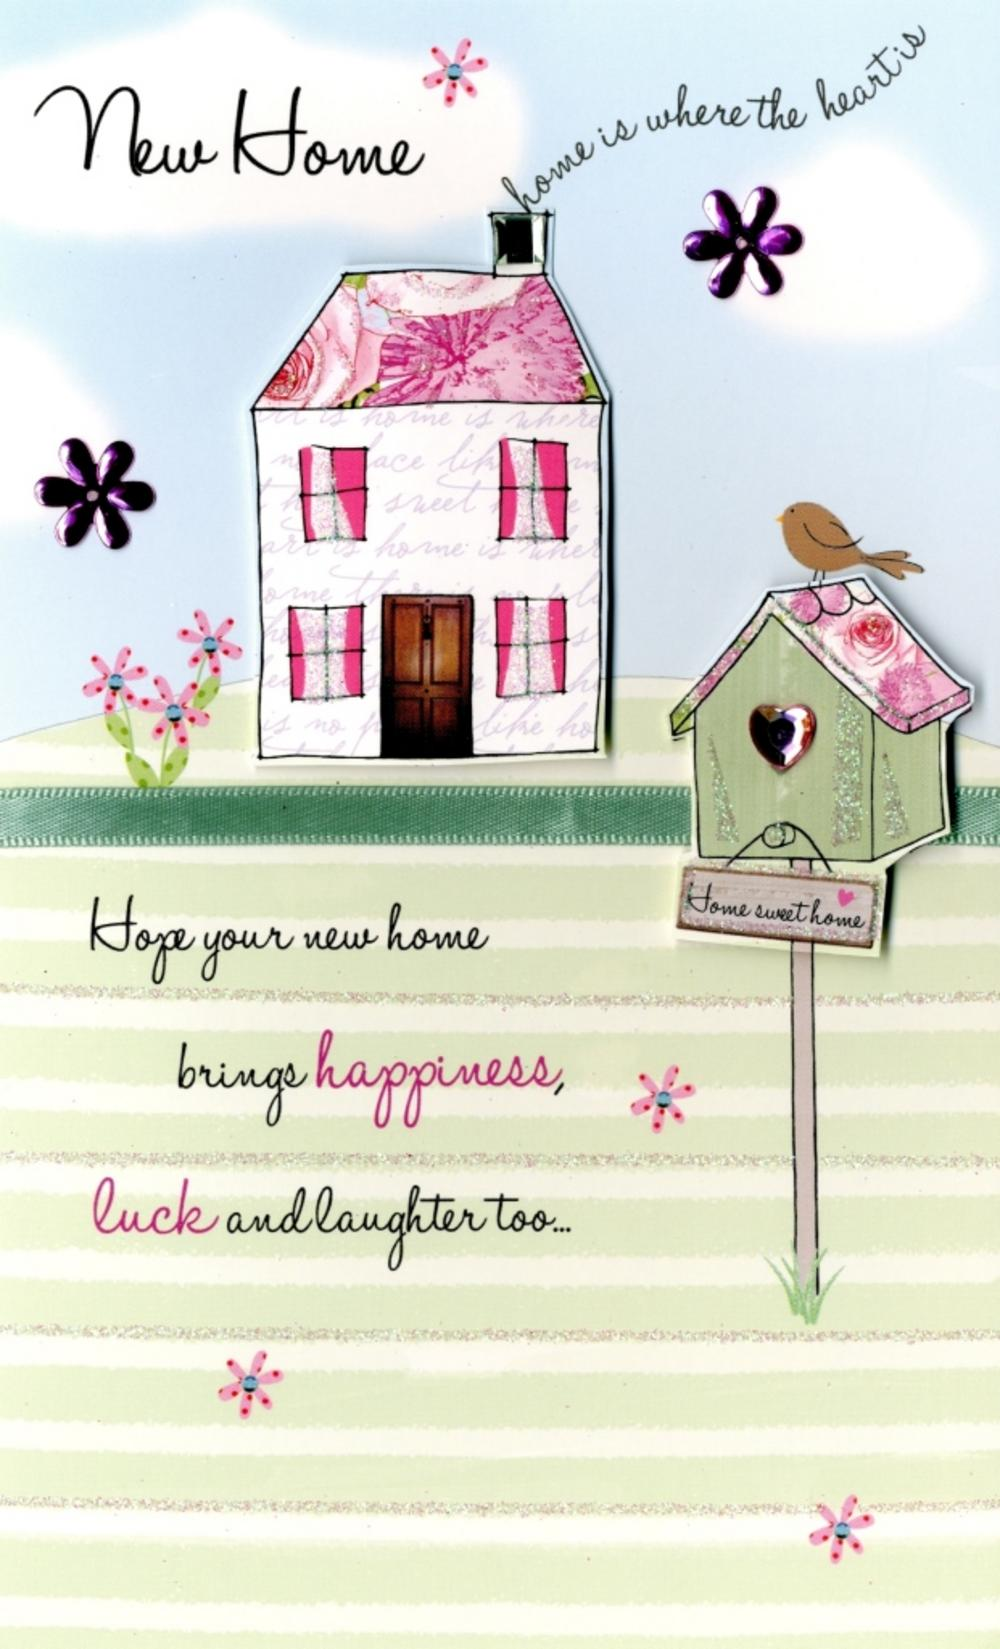 New house poems new home embellished greeting card cards love kates m4hsunfo